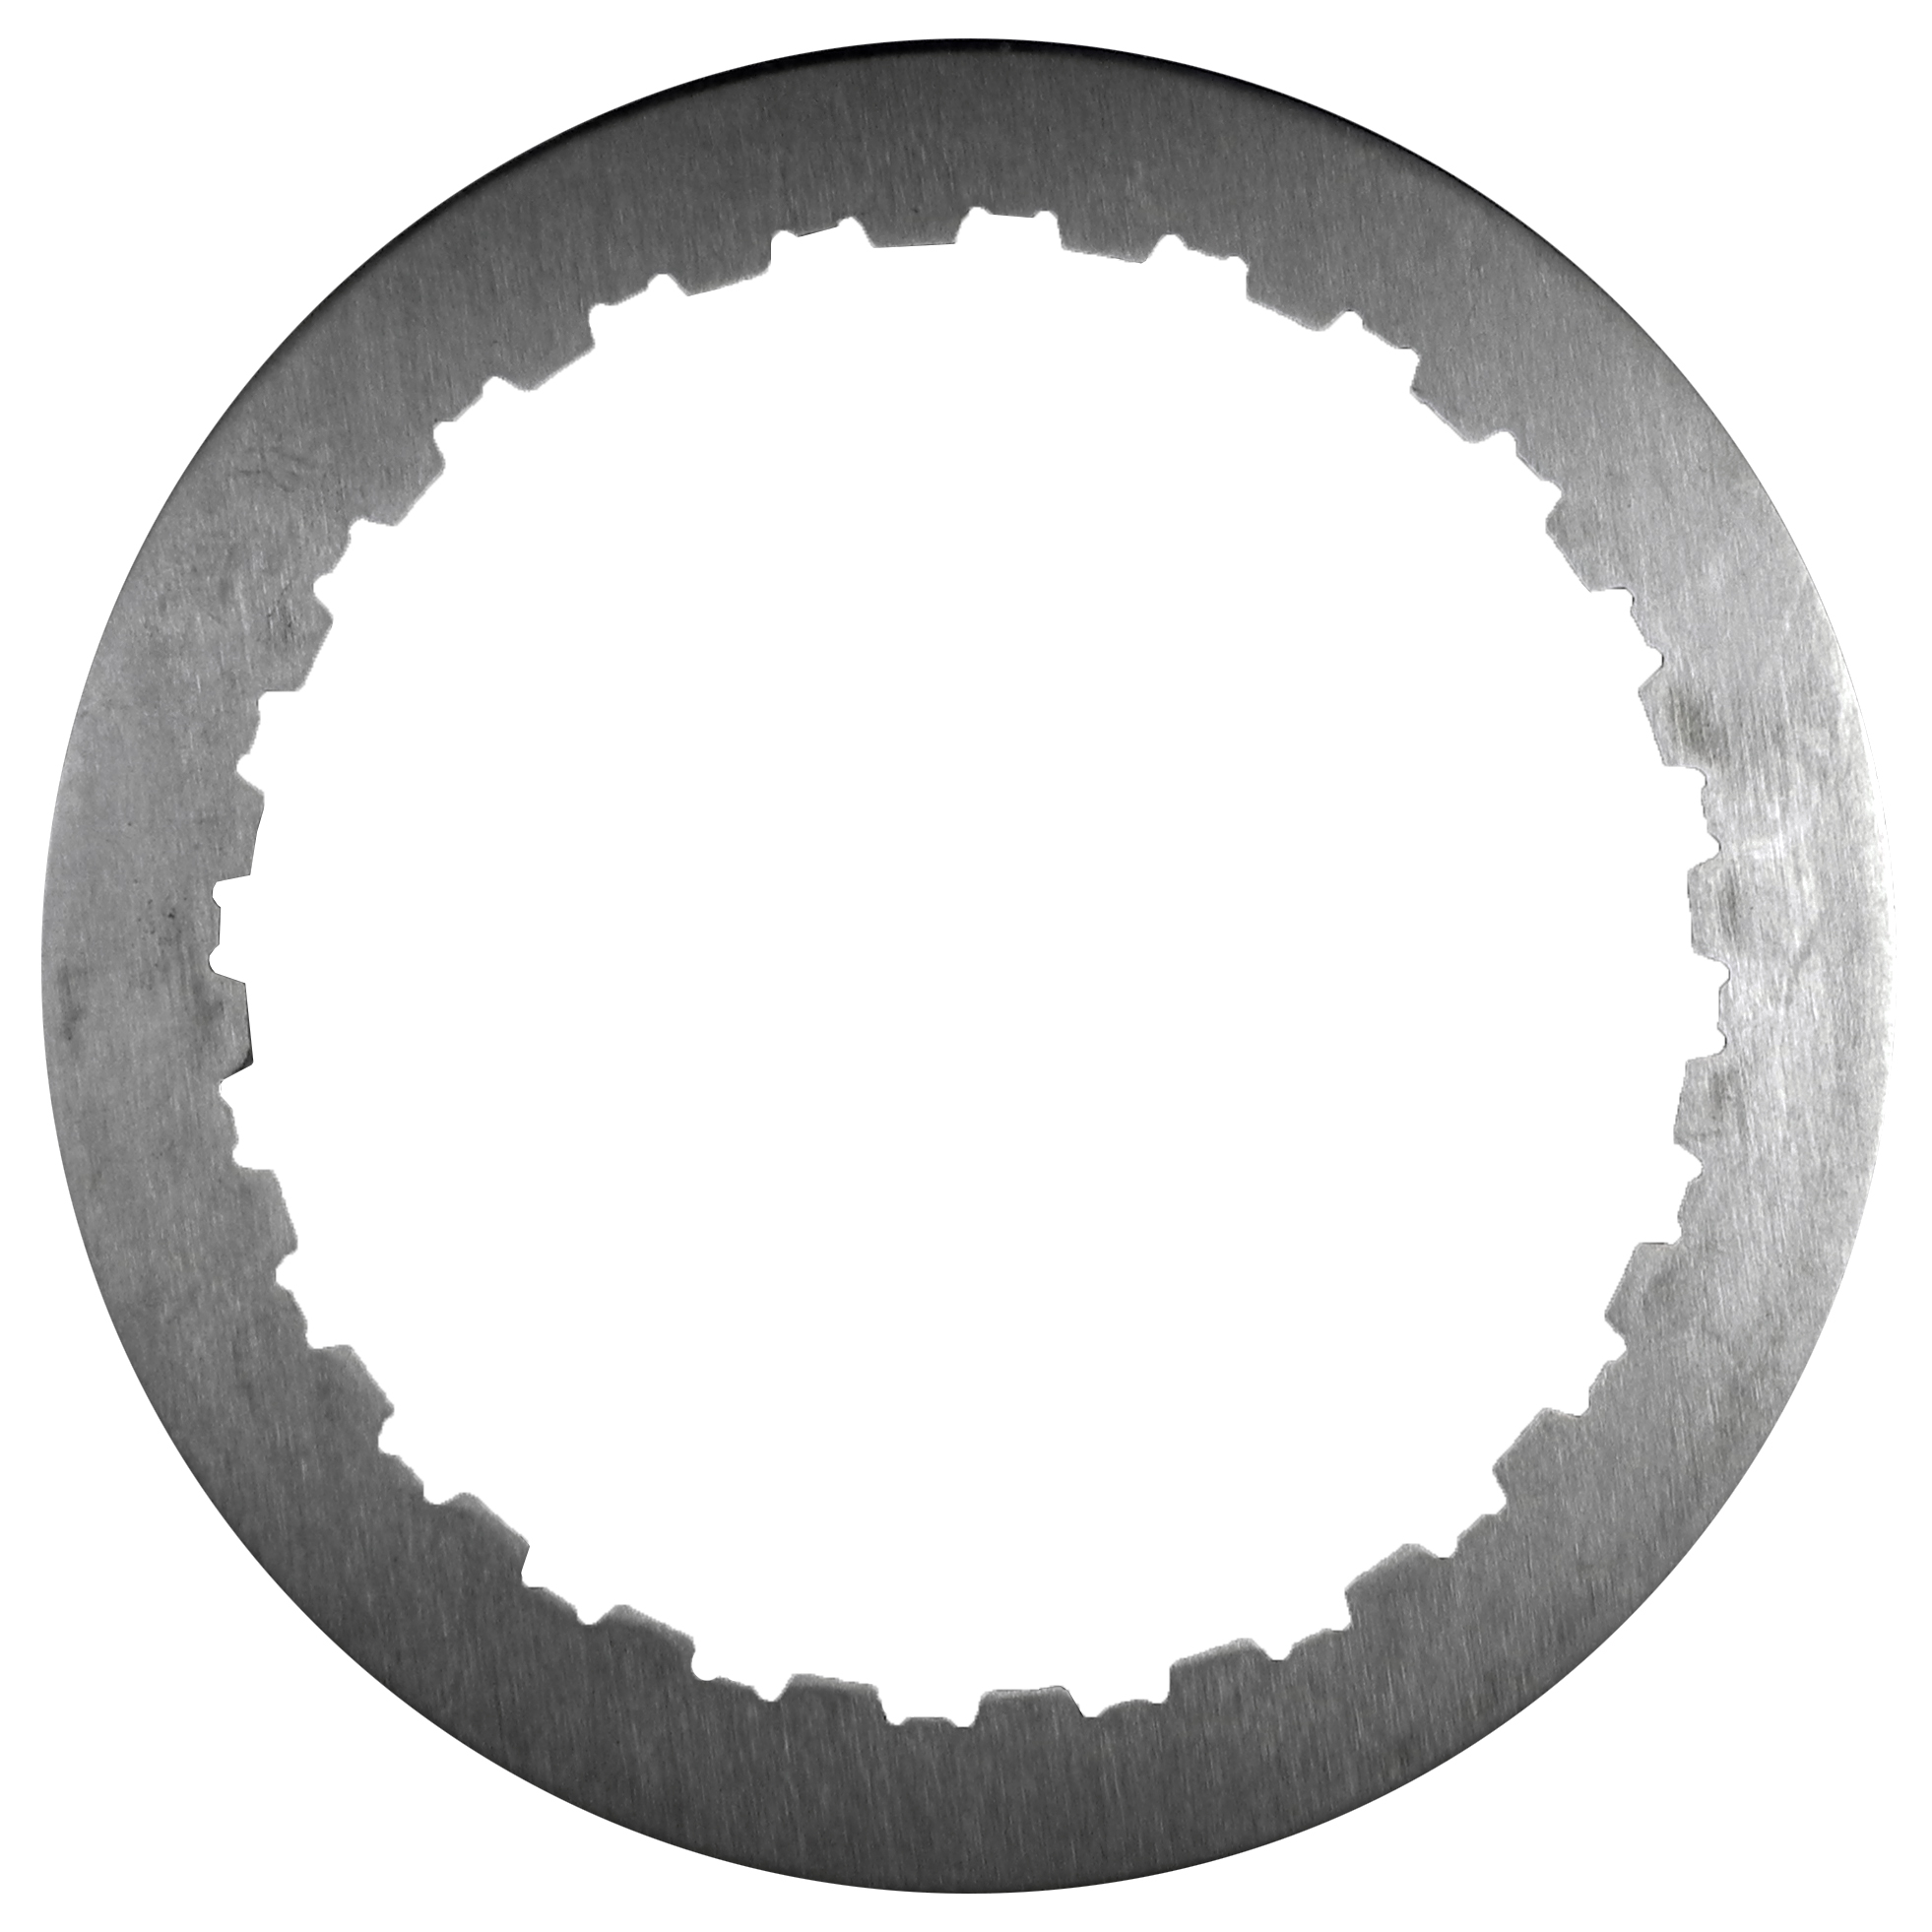 5111135 | 2013-ON Steel Clutch Plate C Clutch ID Spline